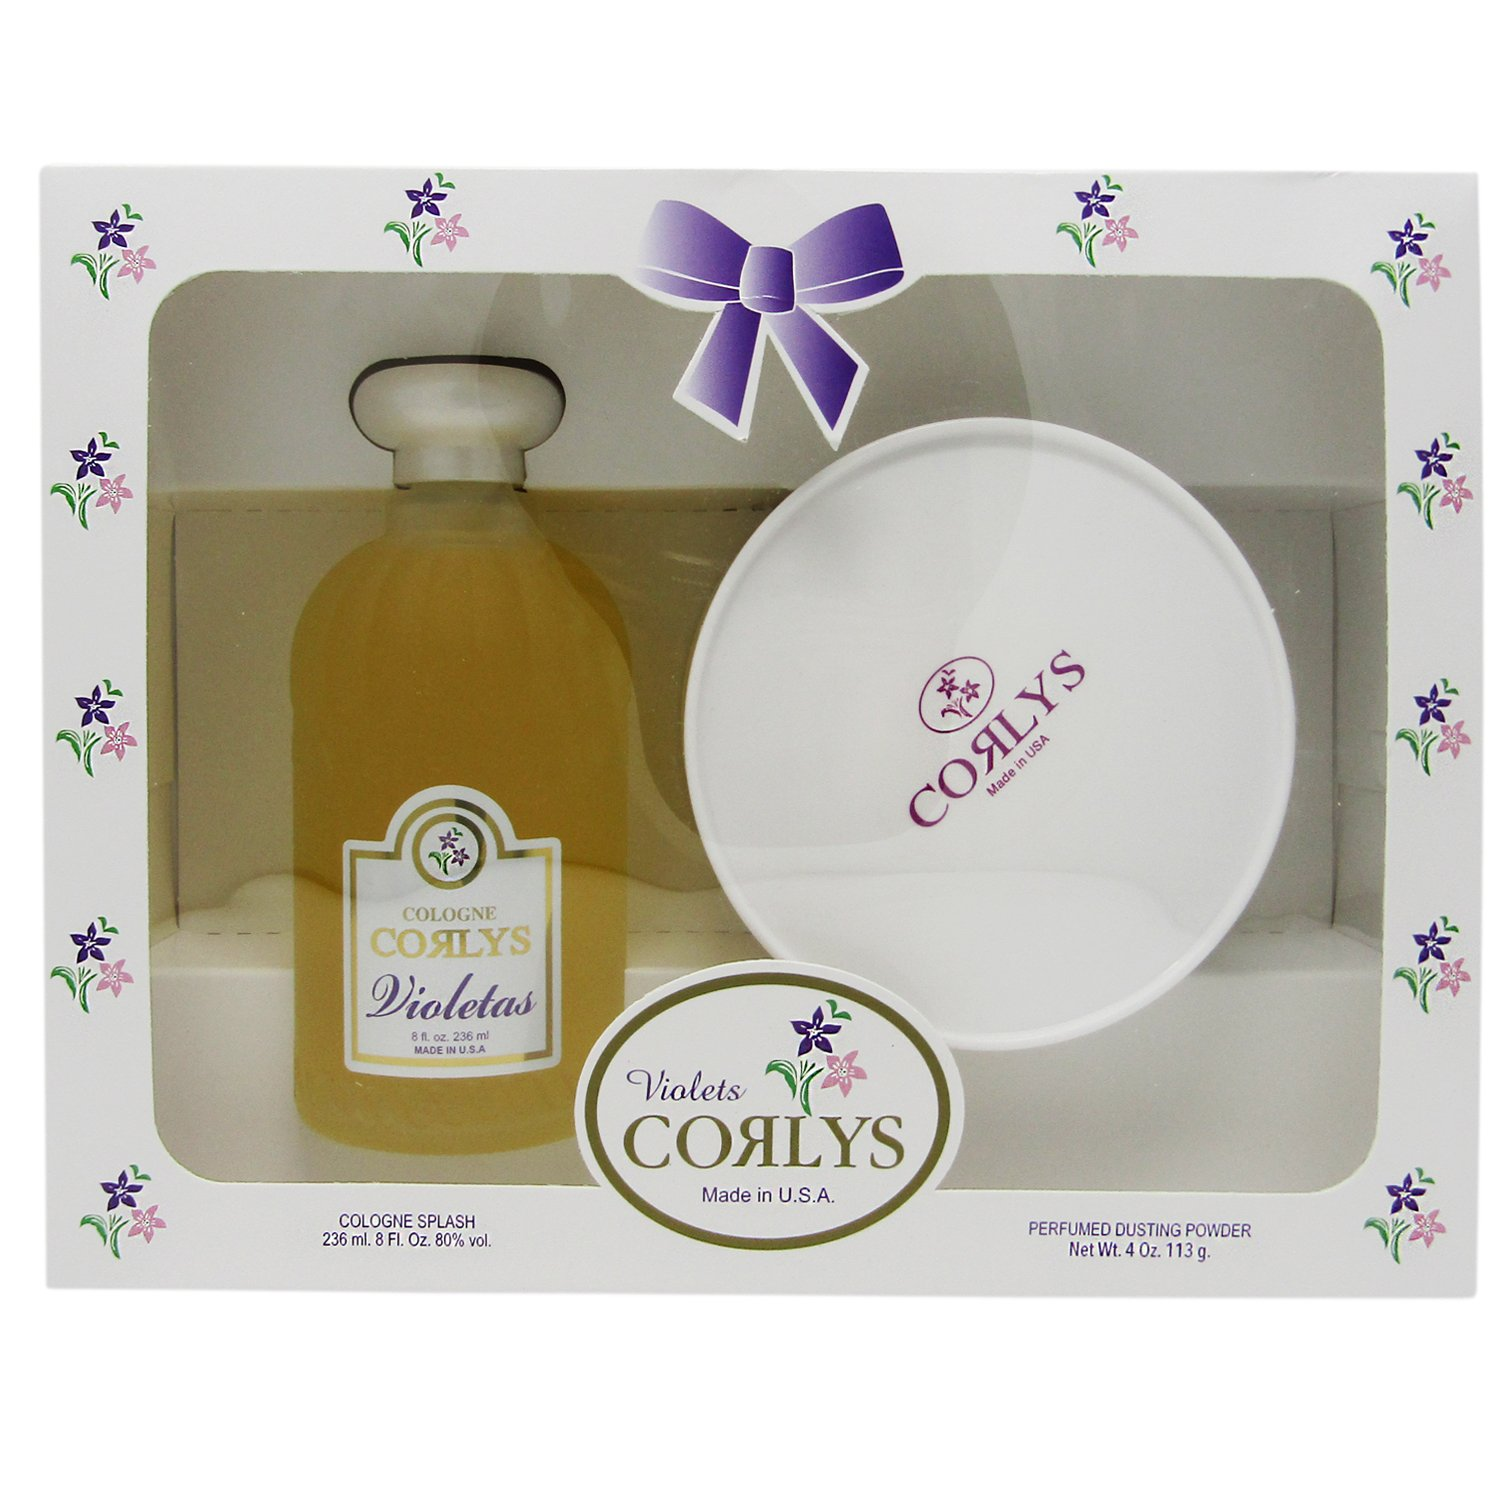 Corlys Violet Baby Cologne and Perfumed Dusting Powder essentialproducts